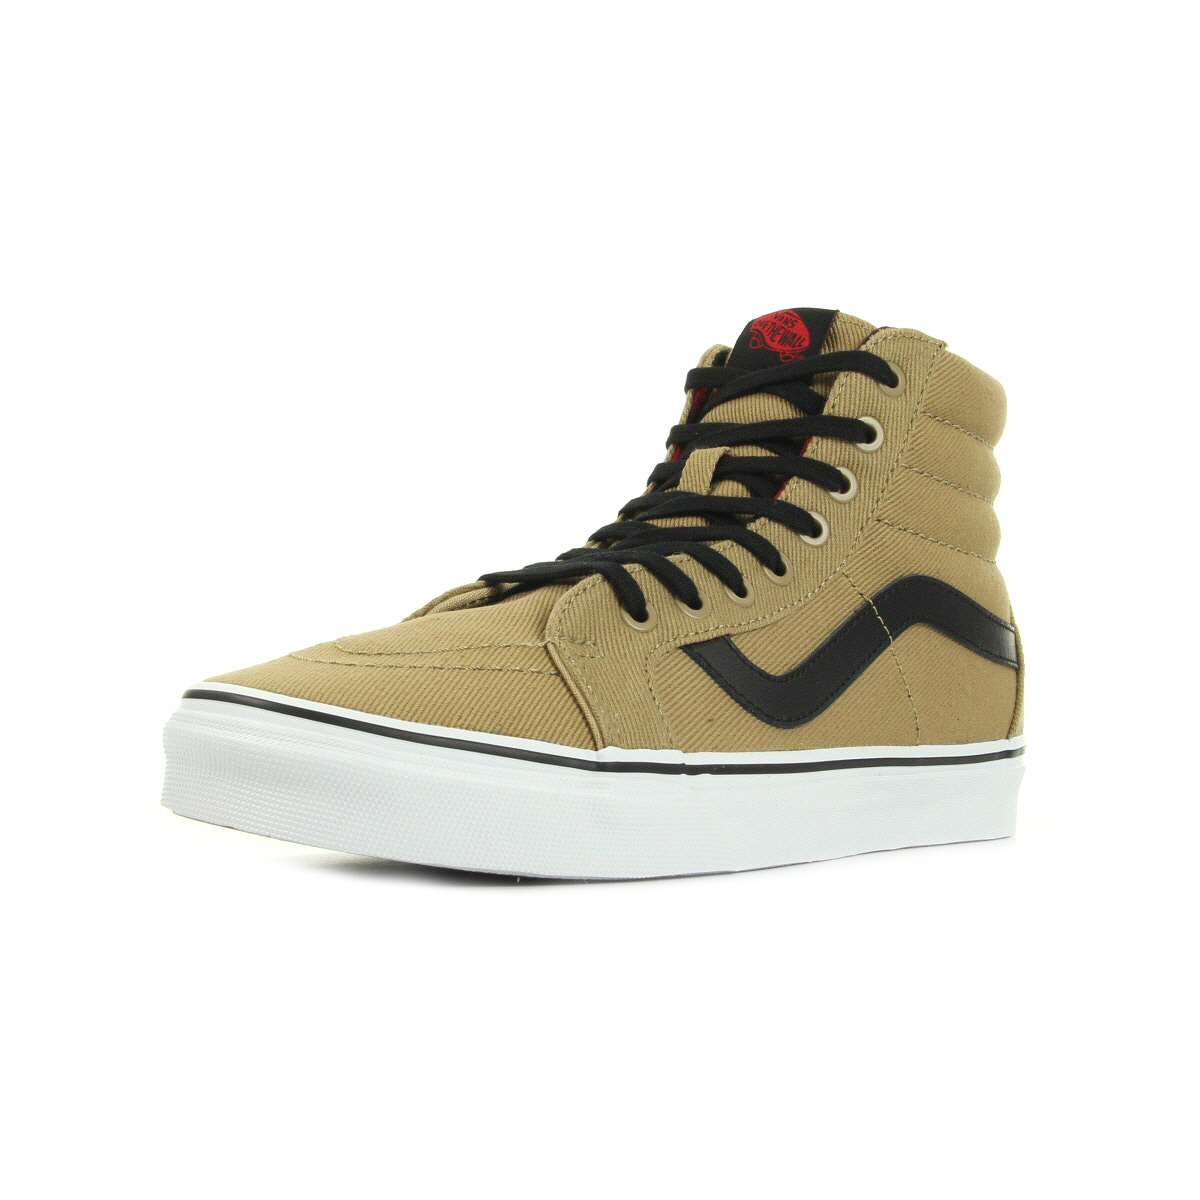 vans u sk8 hi reissue twill gnghm v3caikt chaussures homme homme. Black Bedroom Furniture Sets. Home Design Ideas